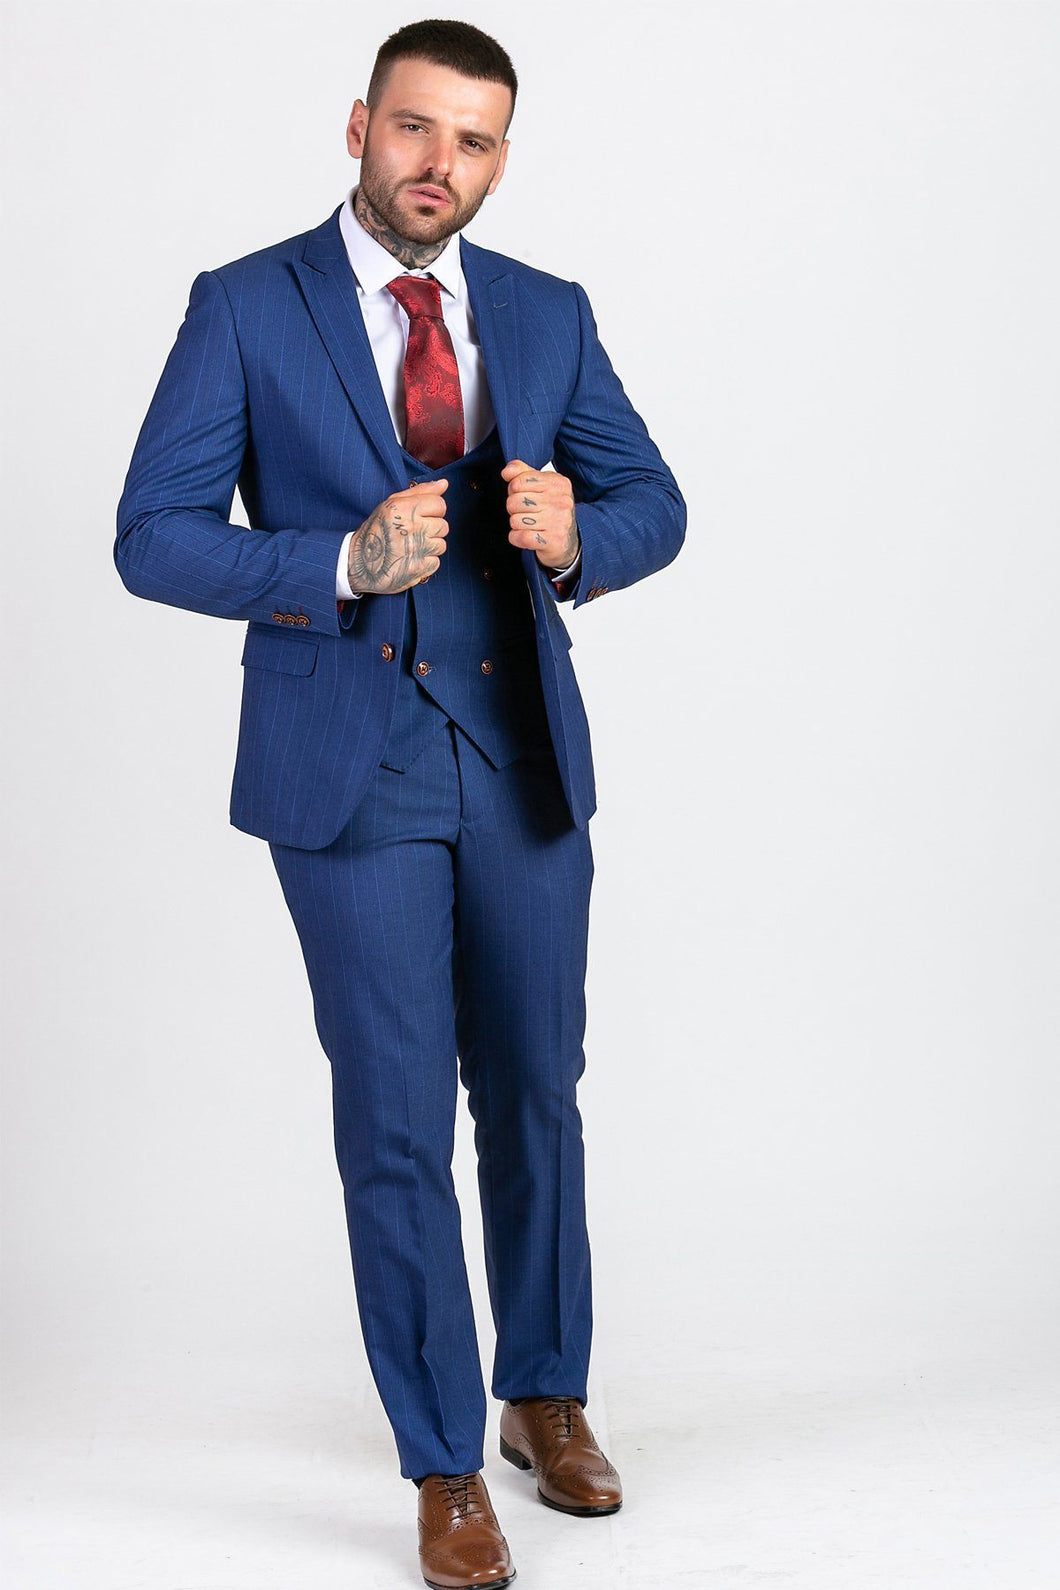 Marc Darcy: CONRAD - Royal Blue Pinstripe Three Piece Suit - Gilt Edged